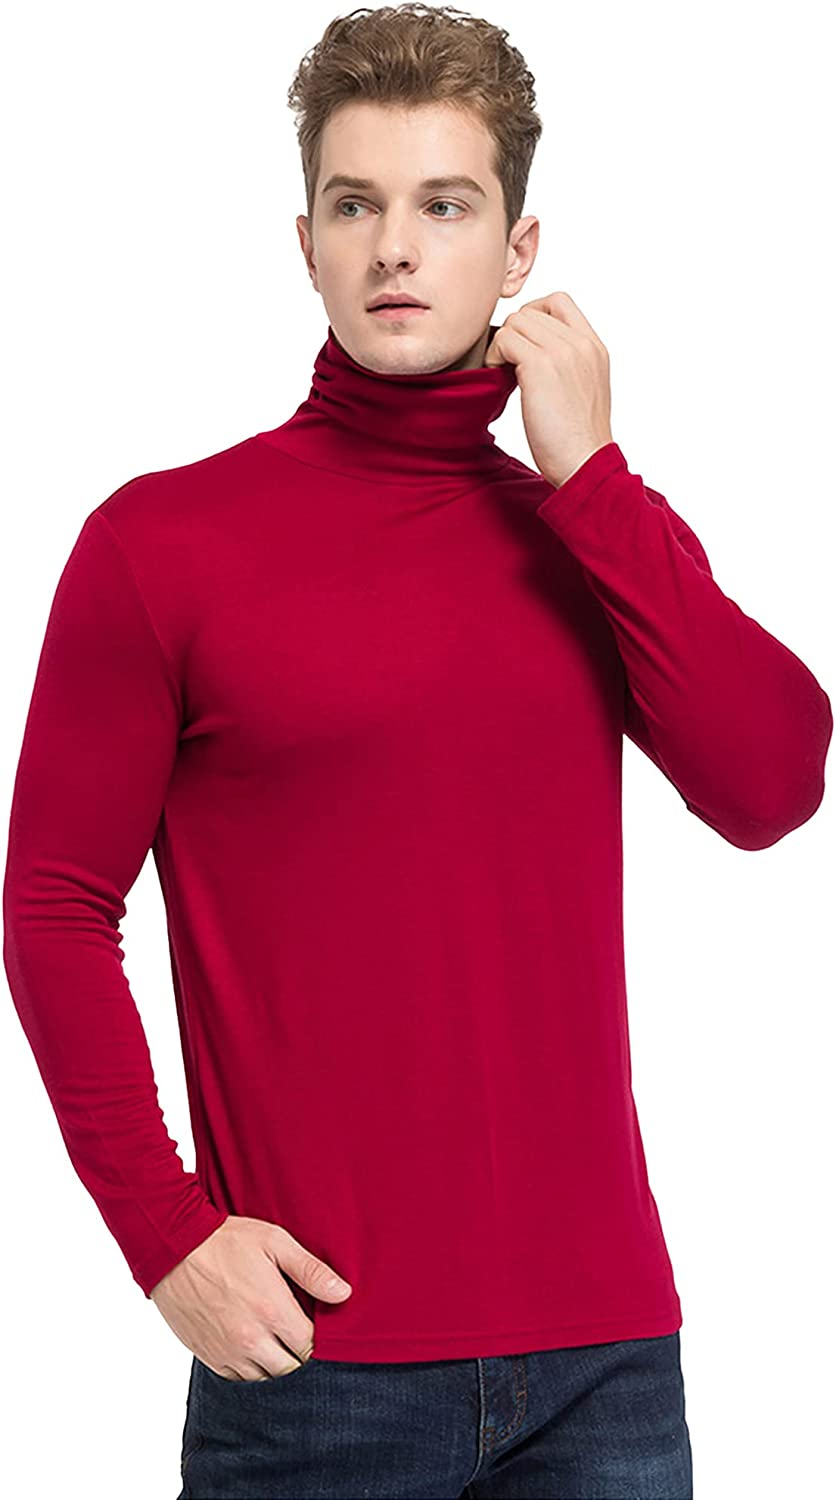 Men's Thermal Underwear Mulberry Silk High Neck Stretch Breathable Silk Cashmere Business Base Layer Long Sleeve Warm Top Quick Dry Base Layer,Red,Large